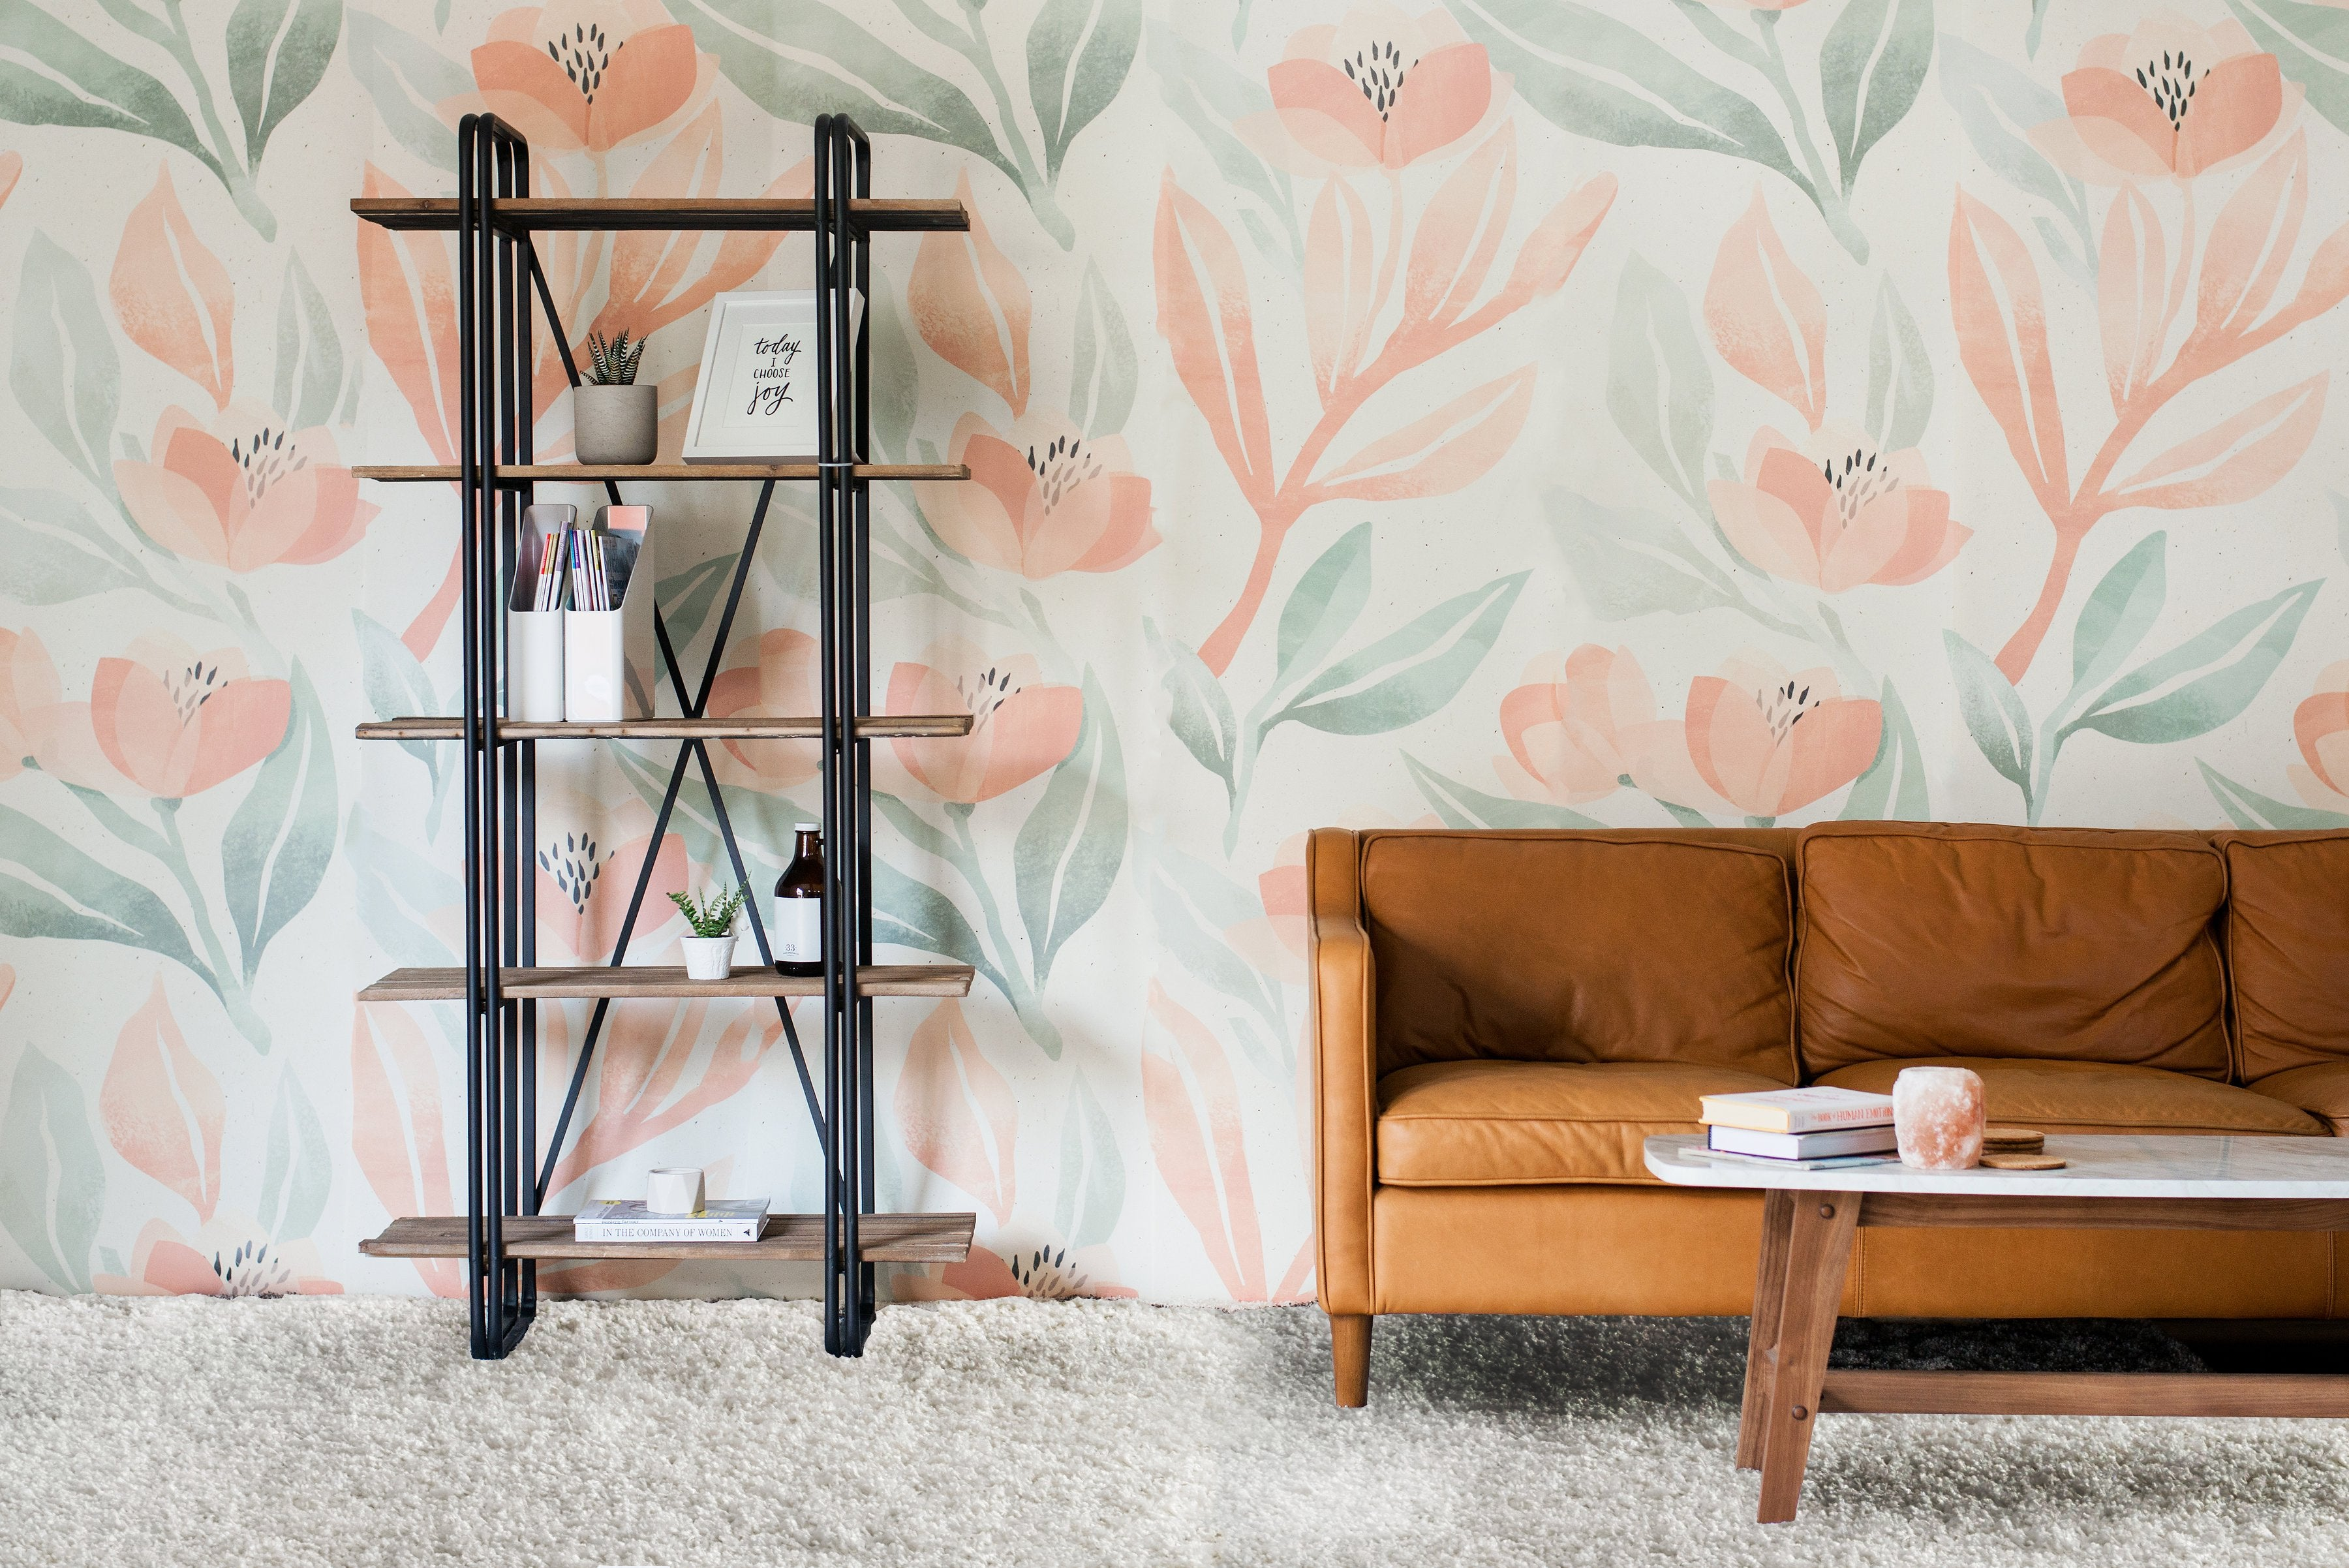 Orange Blossom Mural, Pastel Floral Wallpaper For Walls